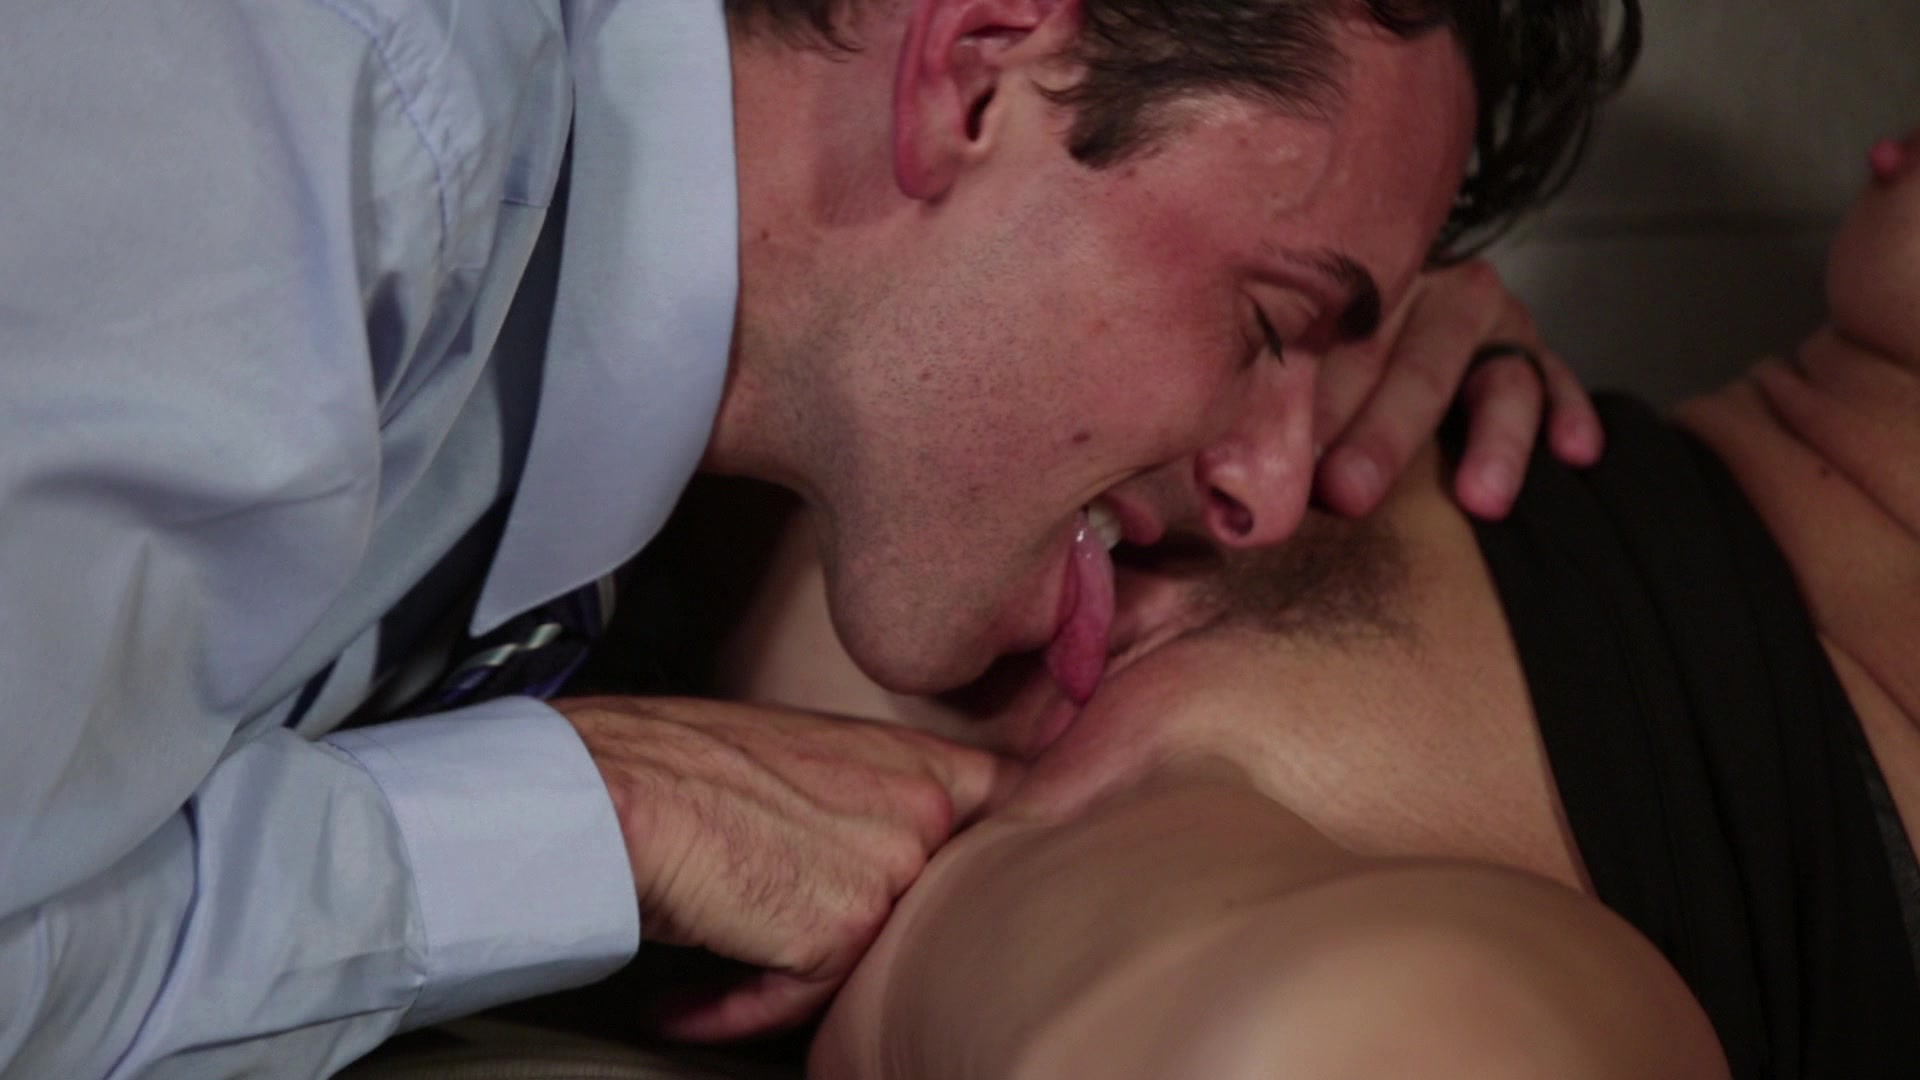 Scene with India Summer - image 12 out of 20